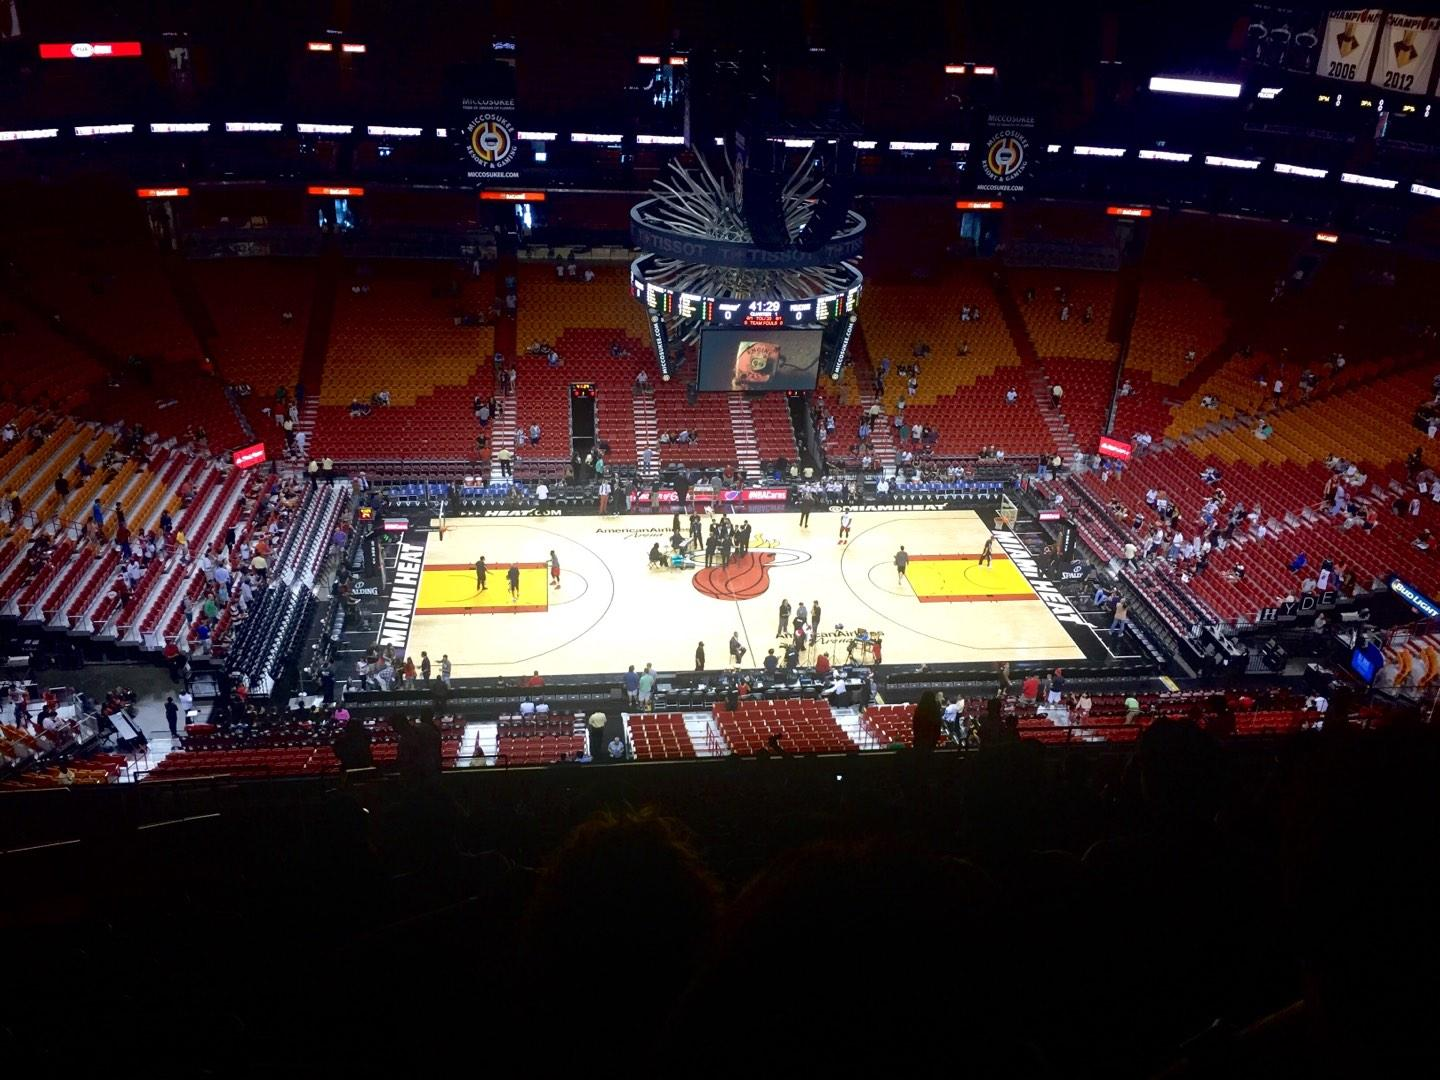 American Airlines Arena Section 325 Row 19